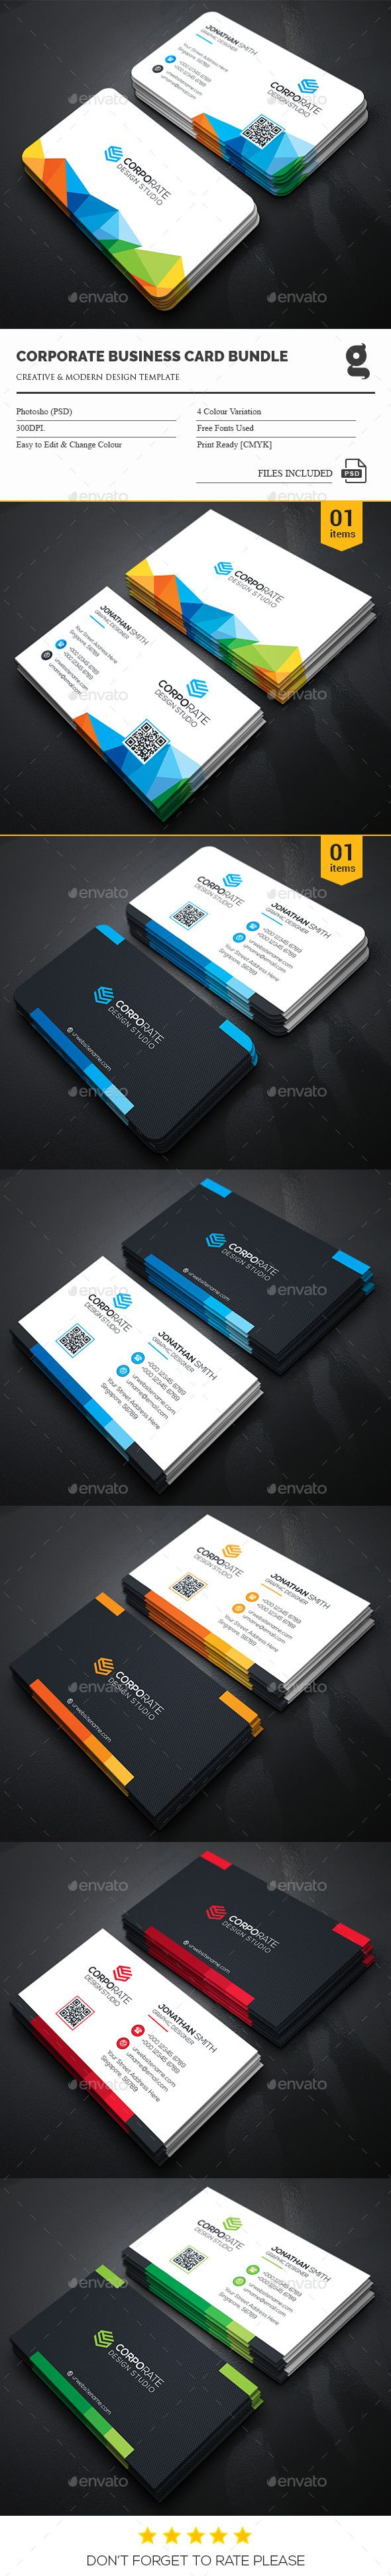 41 best business card images on pinterest